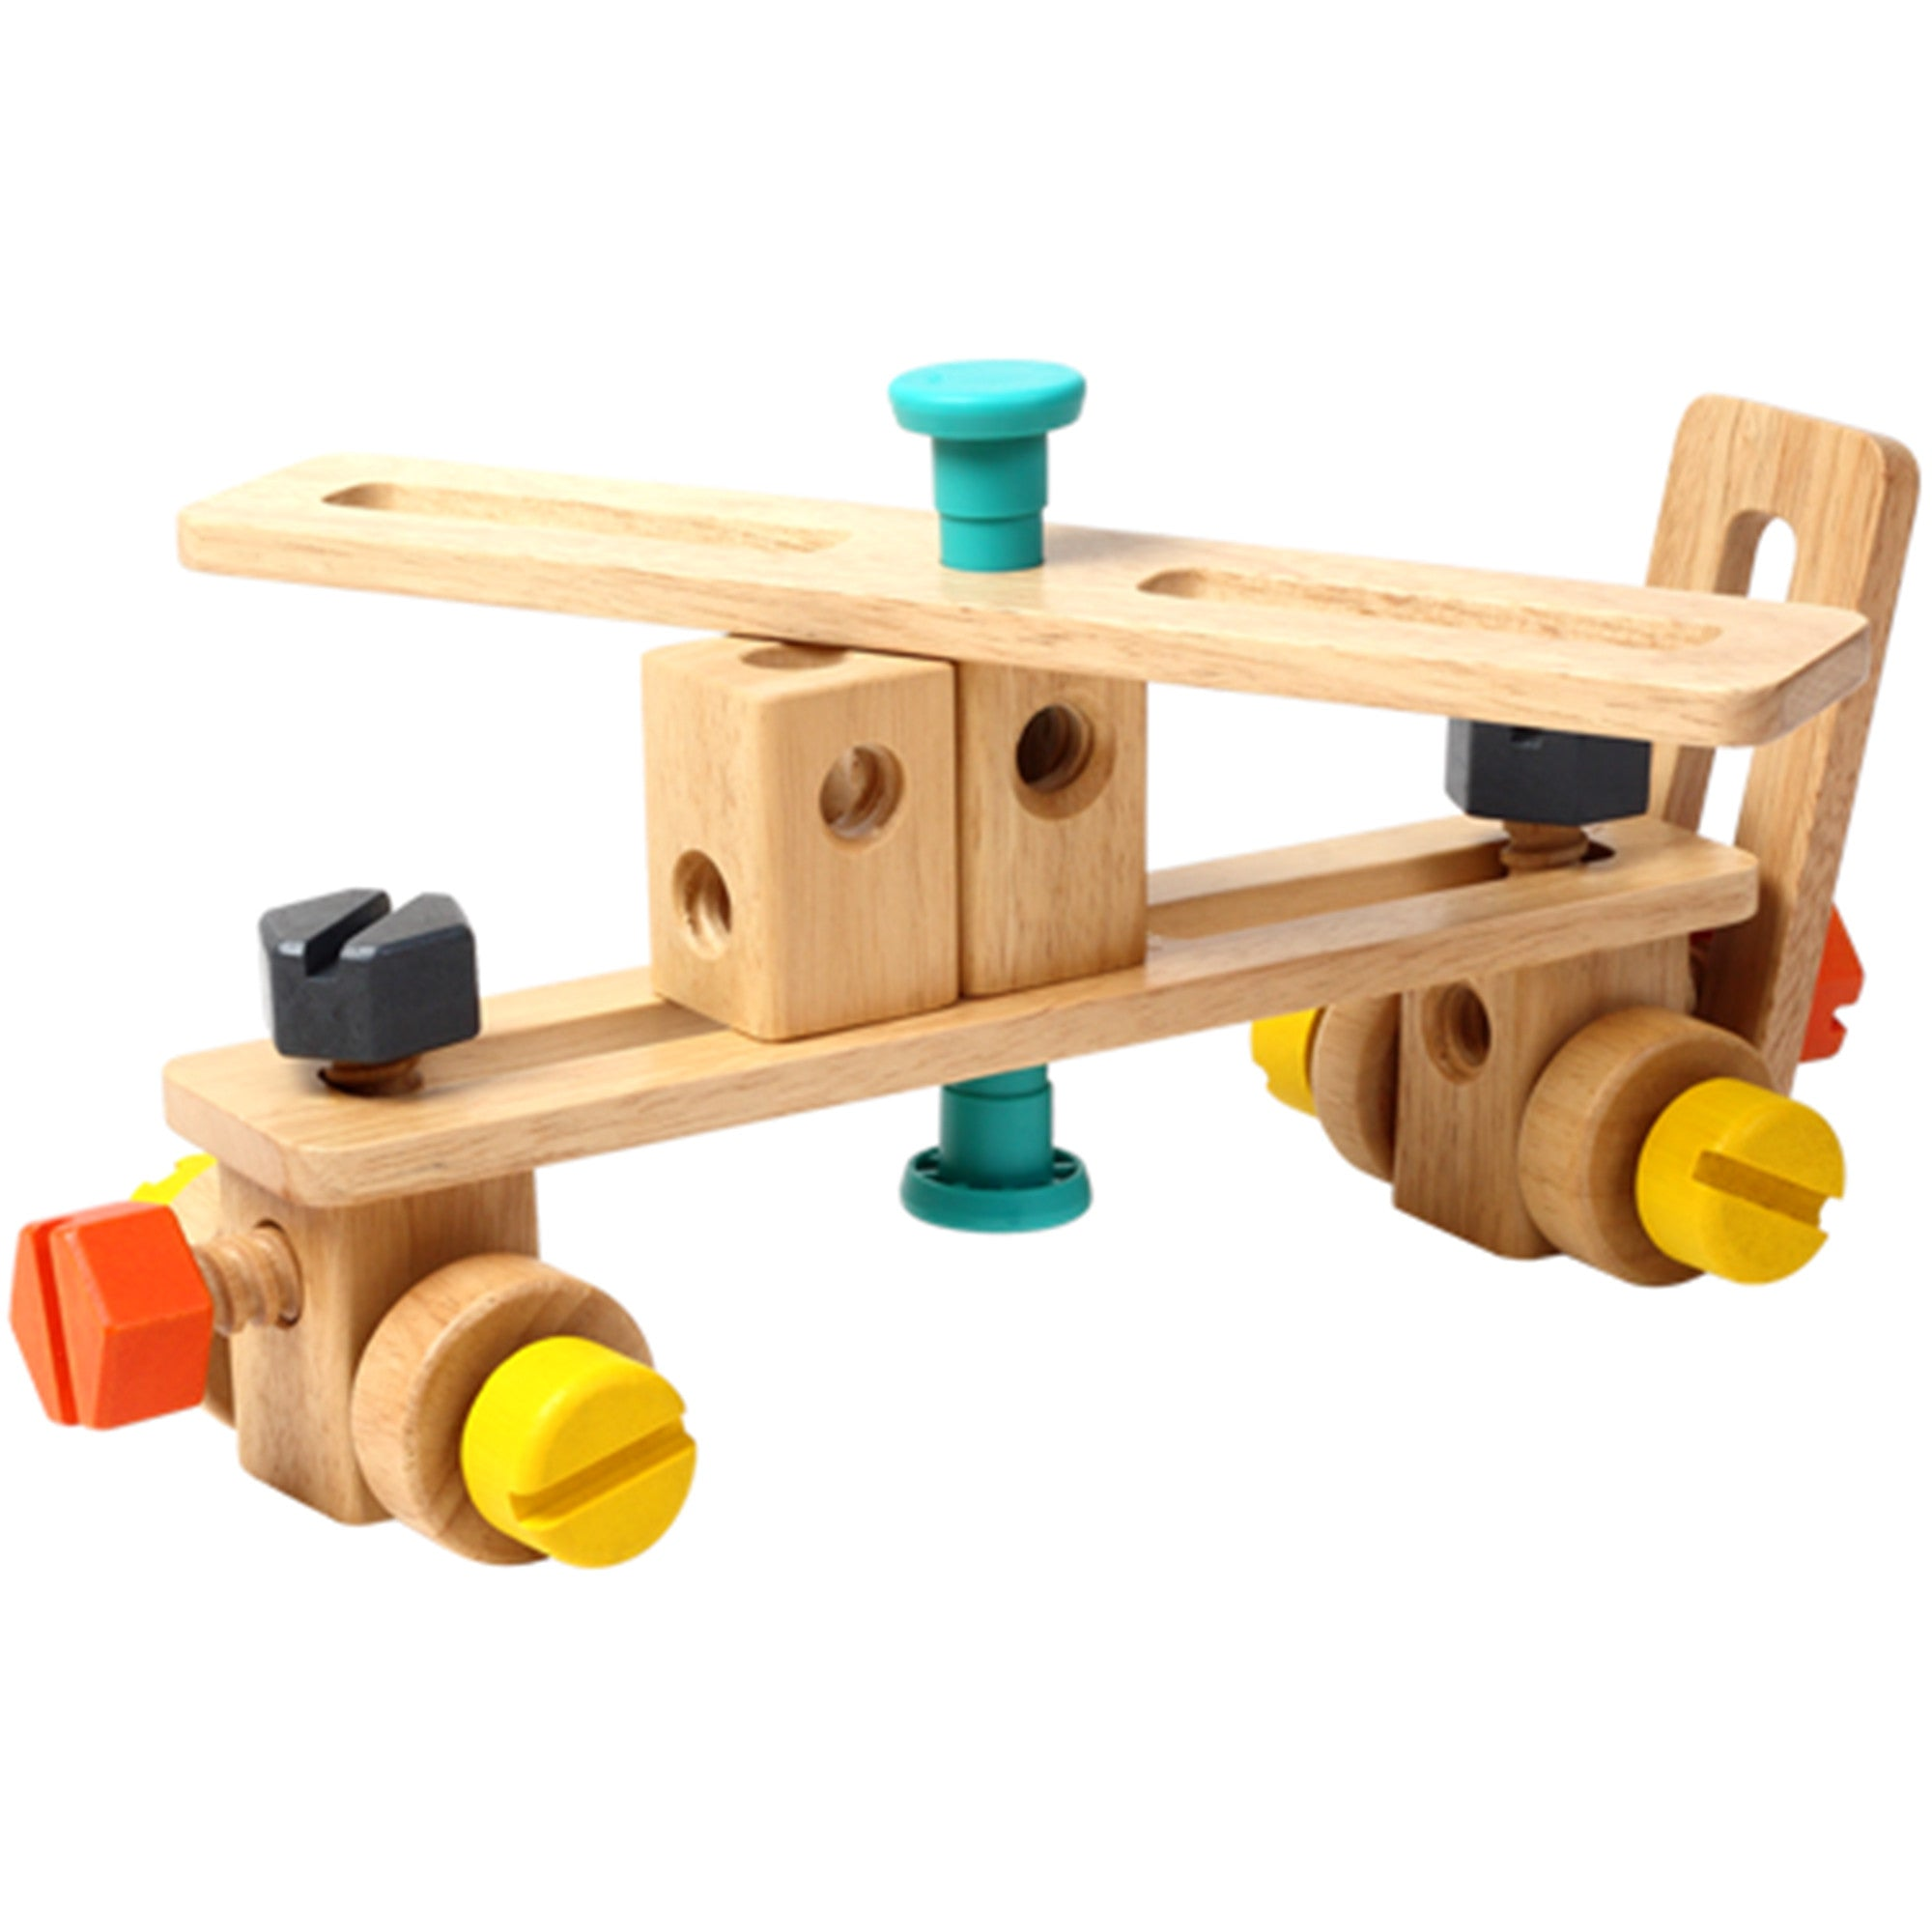 Wooden Toys Product : Wooden toy workbench little earth nest